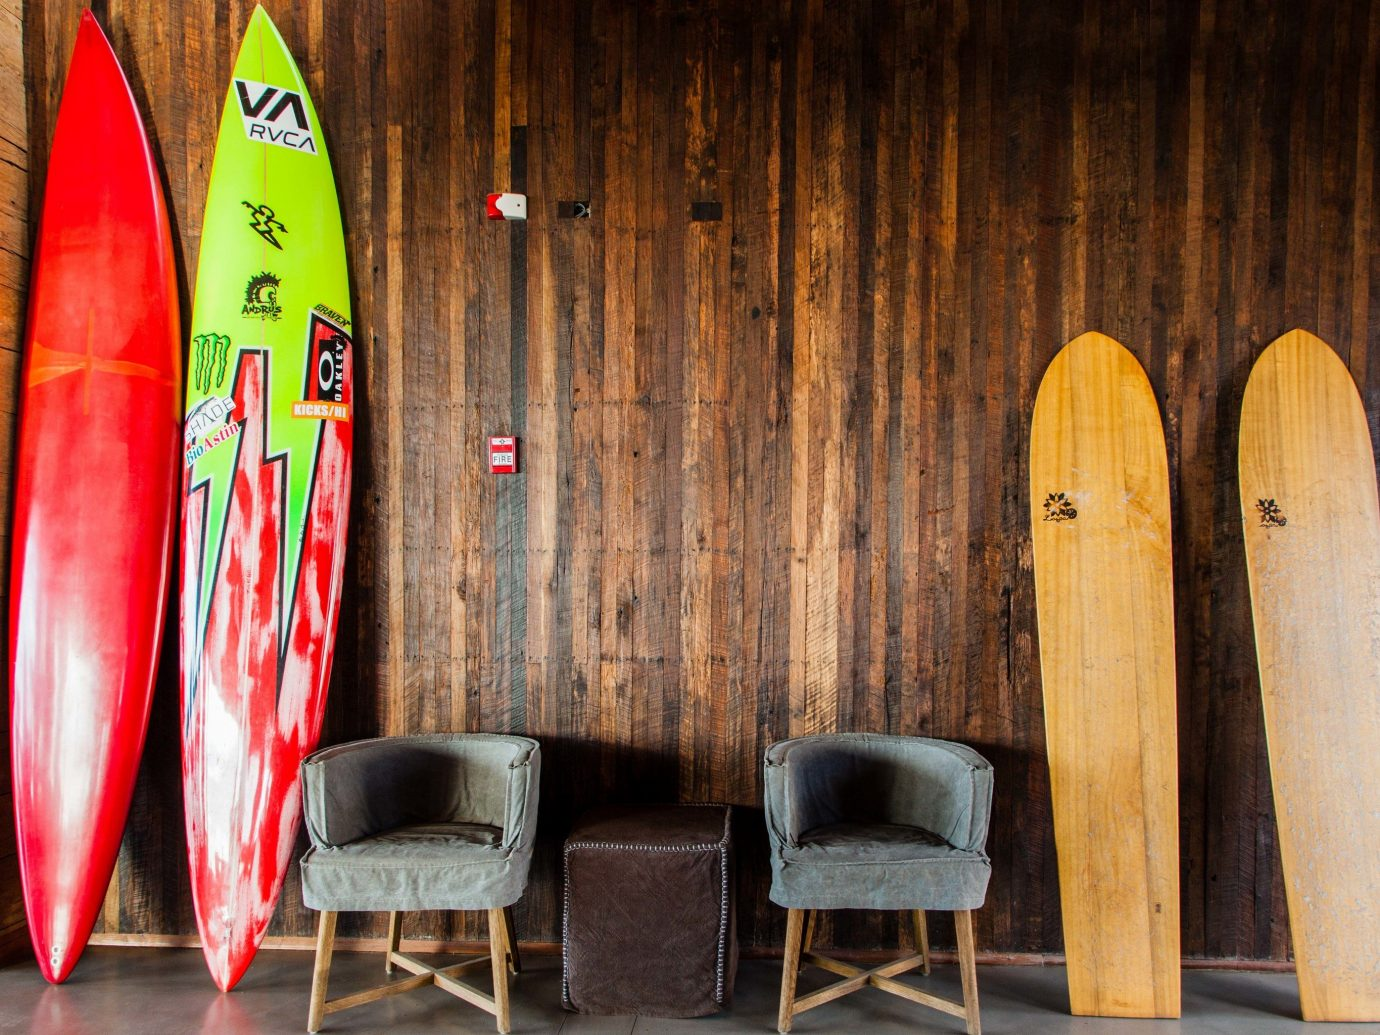 surfing wooden boarding furniture wood table board row lined chair interior design